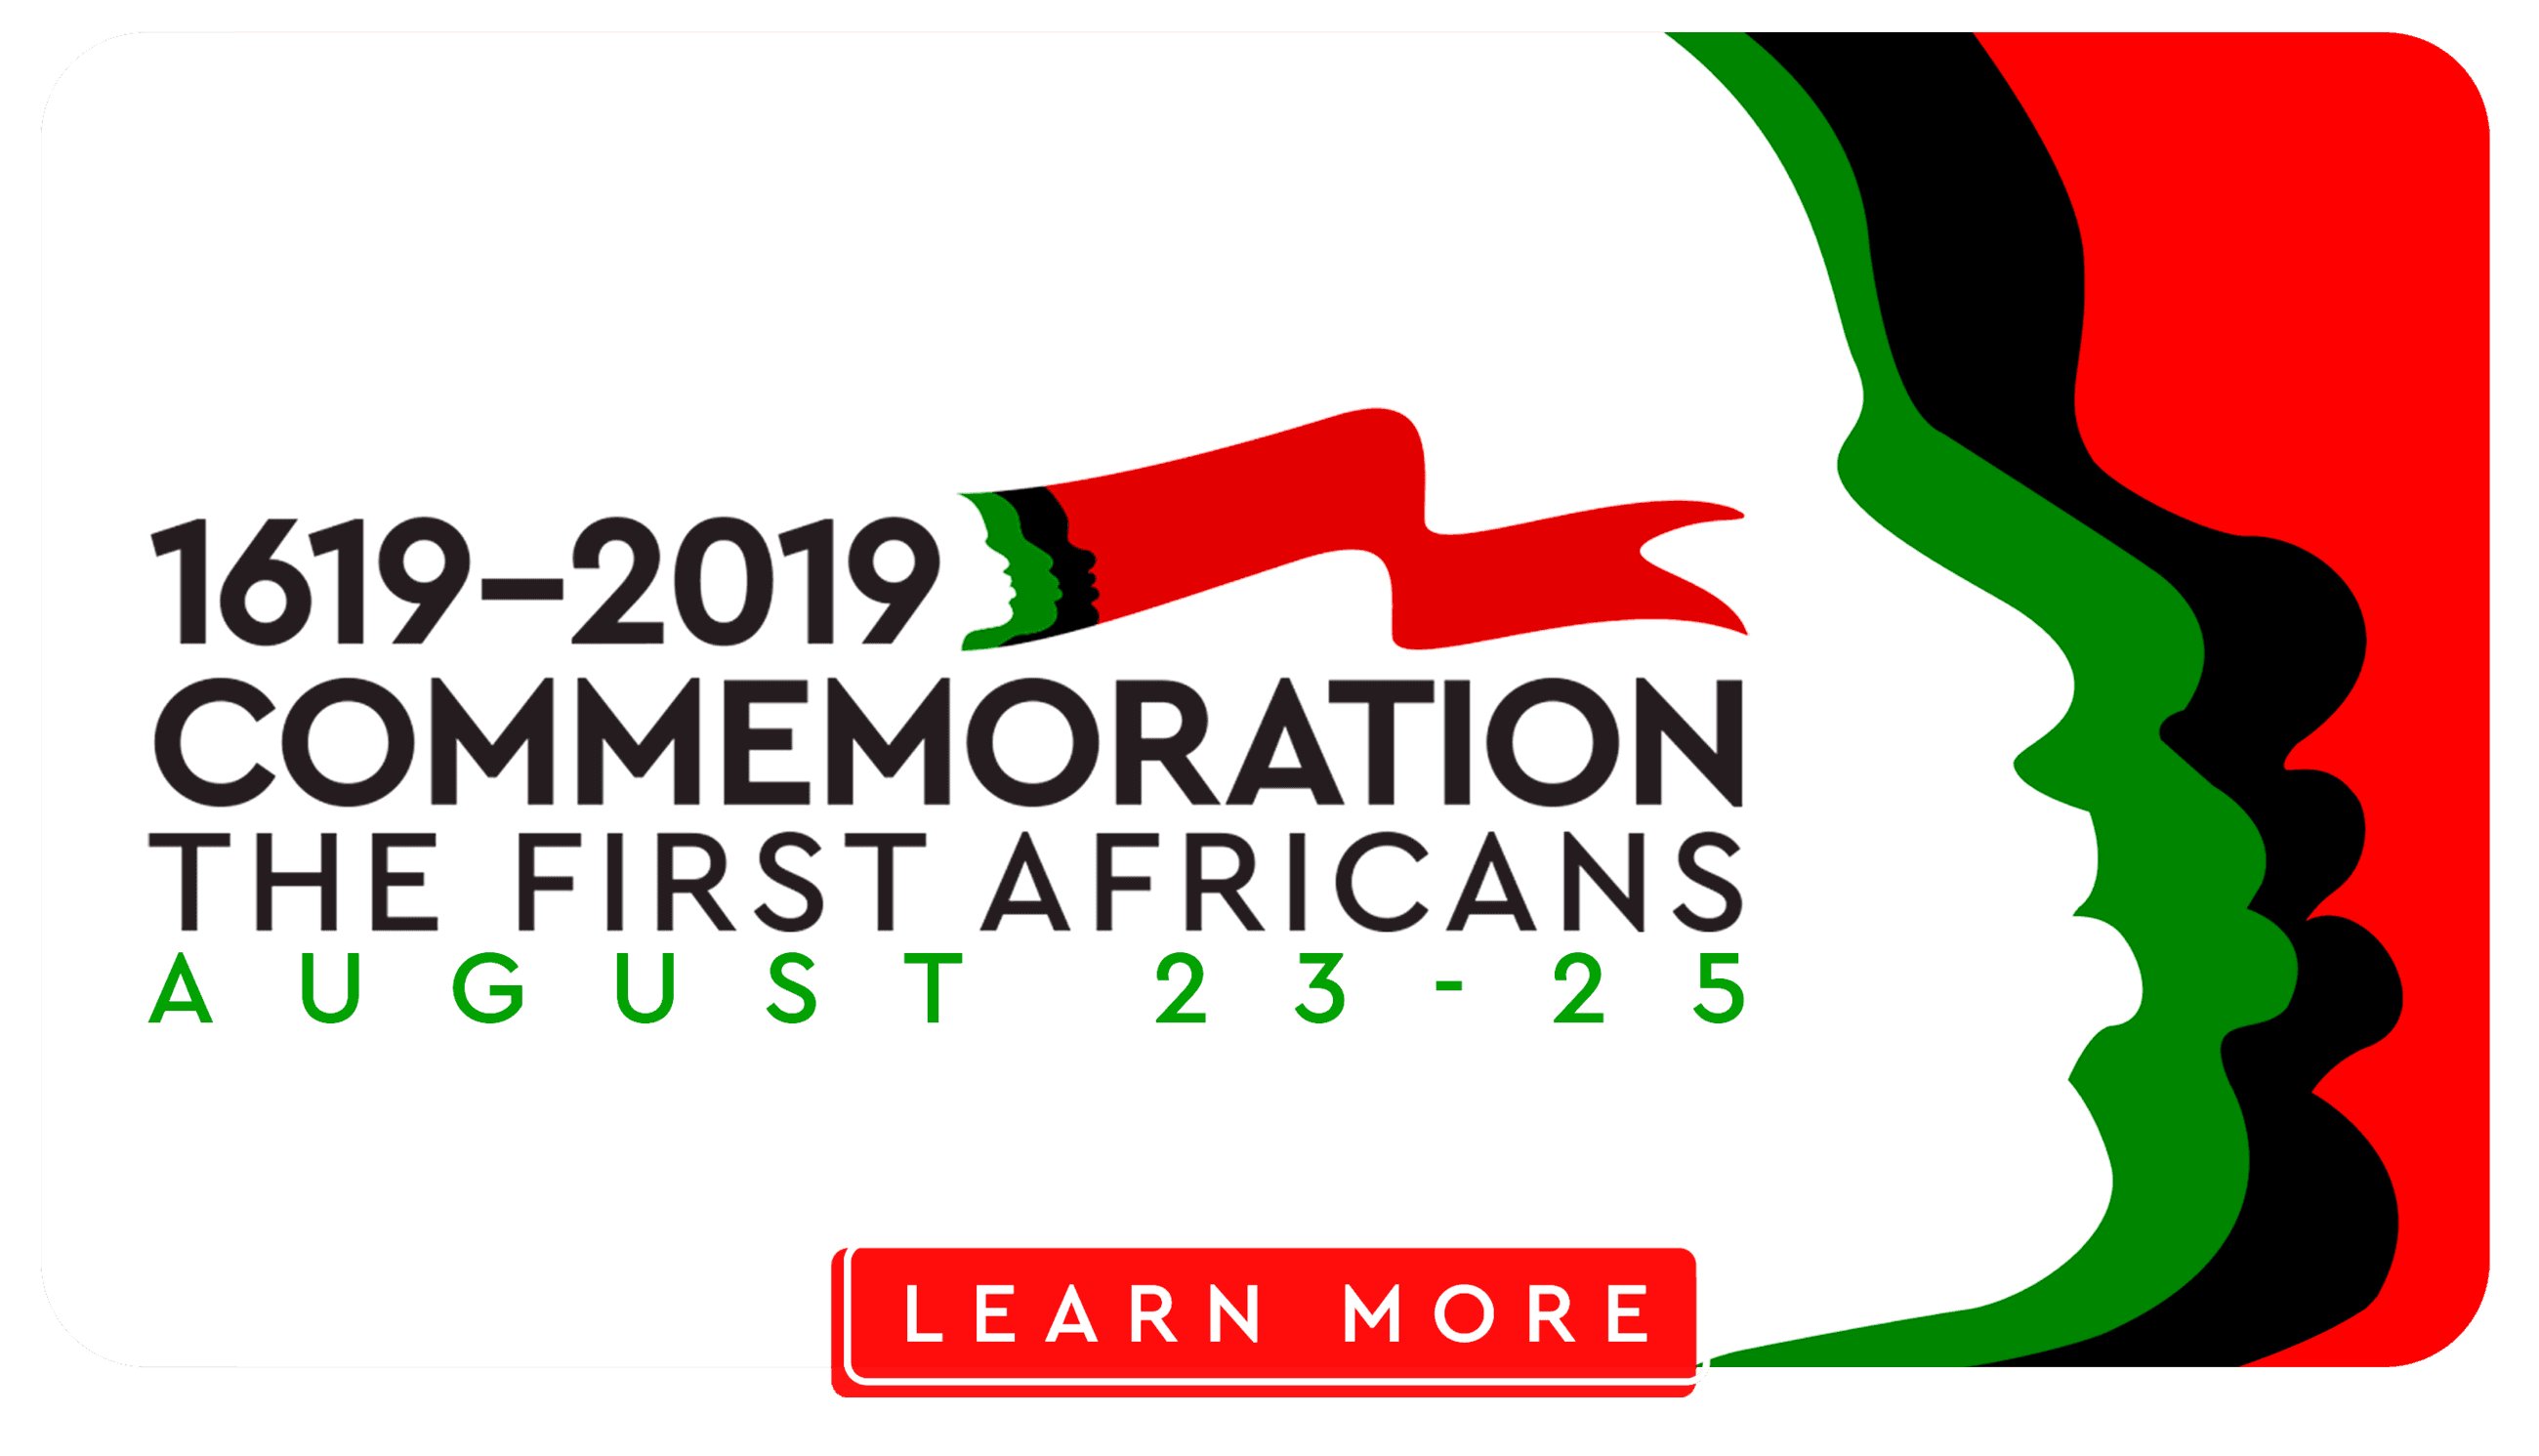 1619-2019 Commemoration